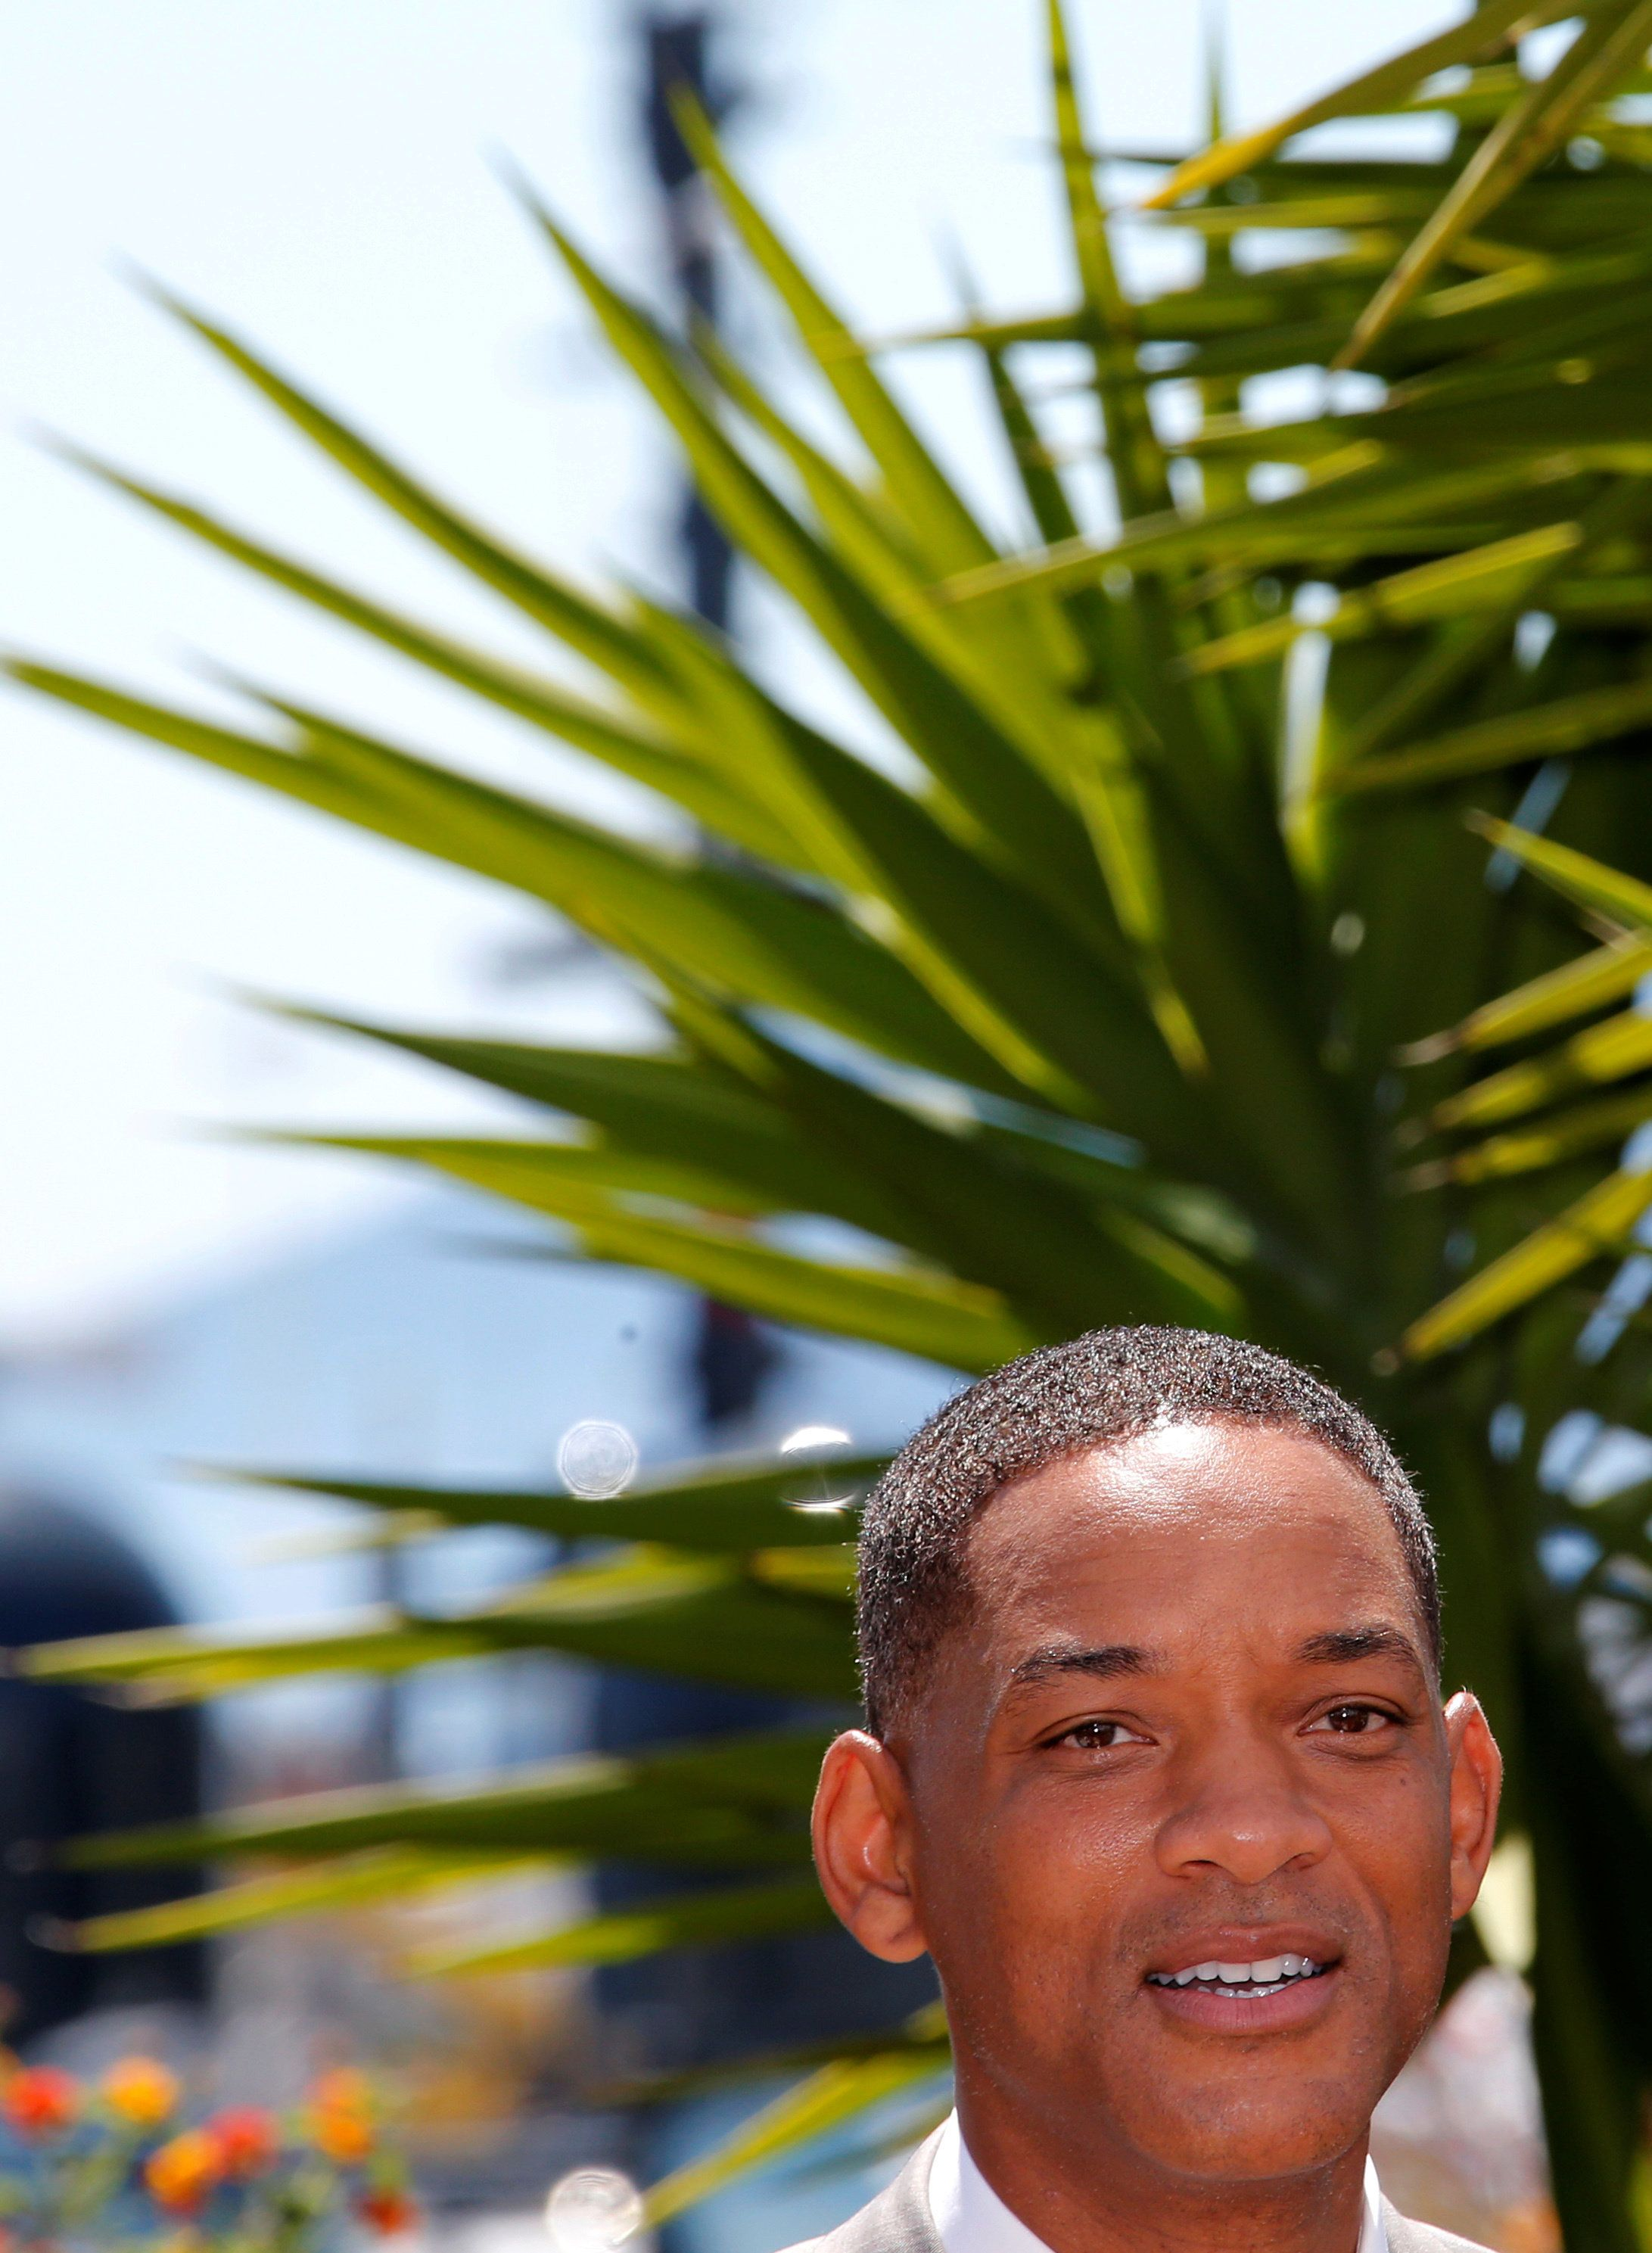 70th Cannes Film Festival - Photocall of the jury - Cannes, France. 17/05/2017. Jury member Will Smith poses.  REUTERS/Jean-Paul Pelissier